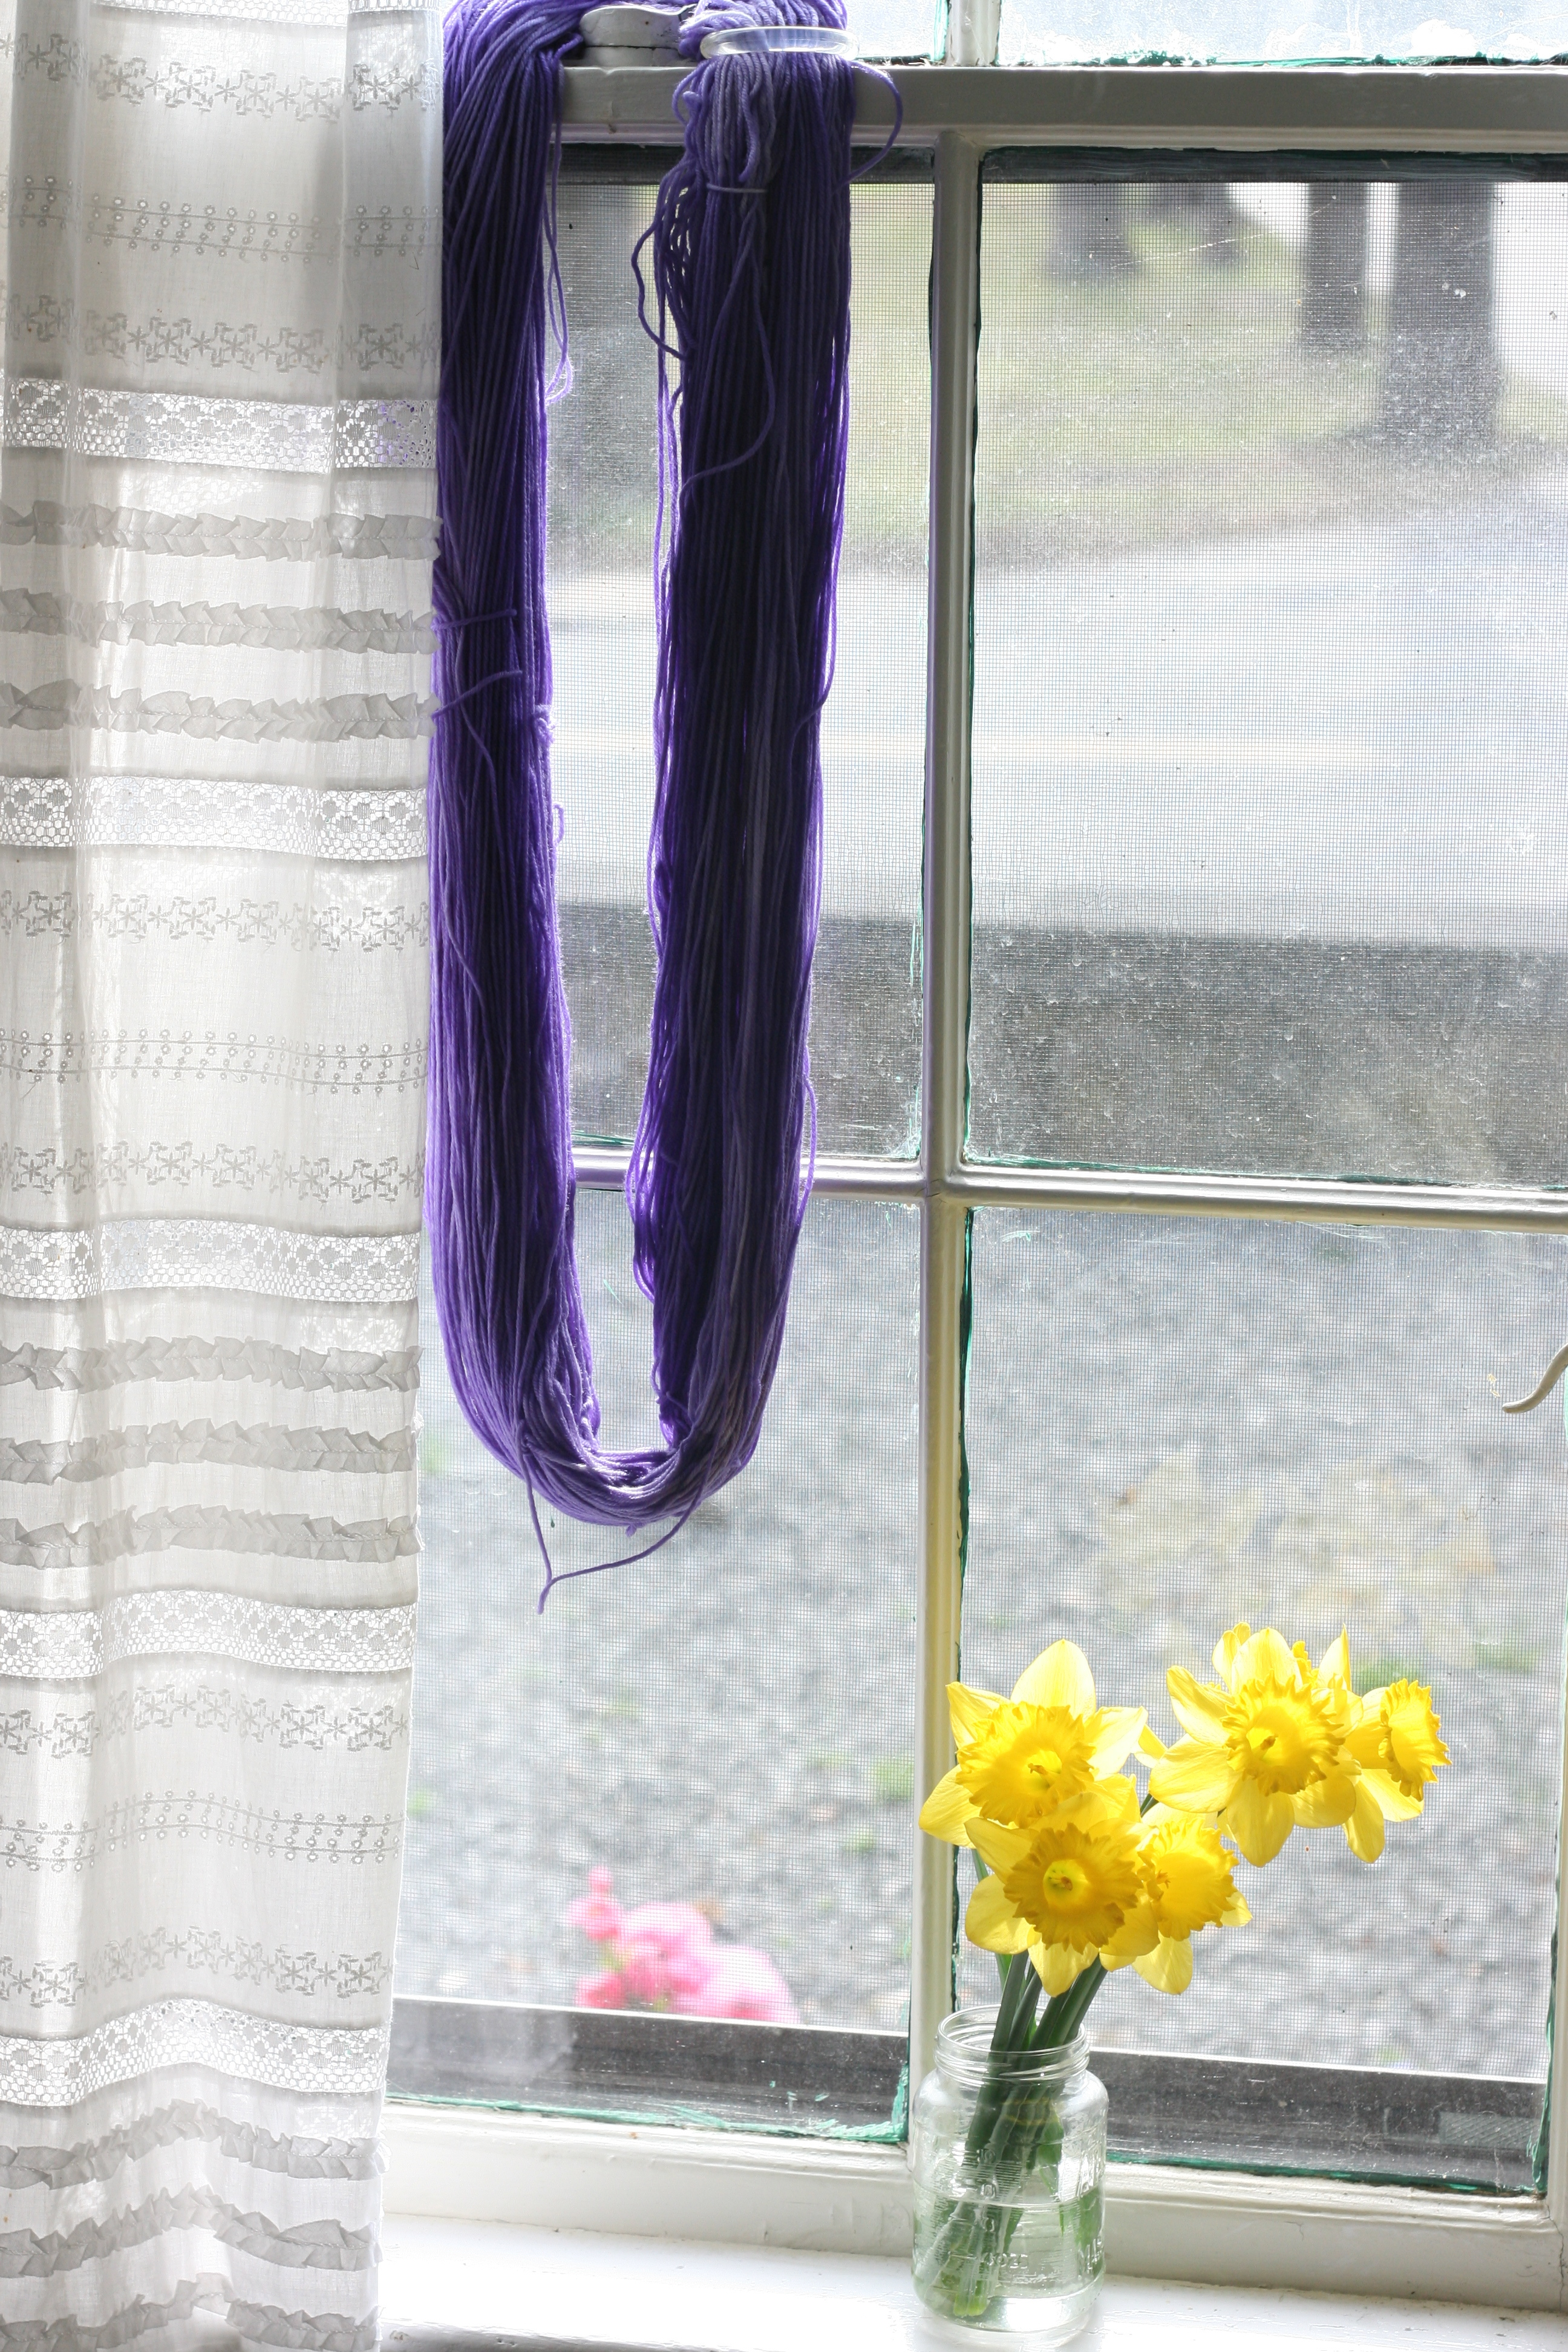 Here You Can See Lilac Colored Yarn Drying